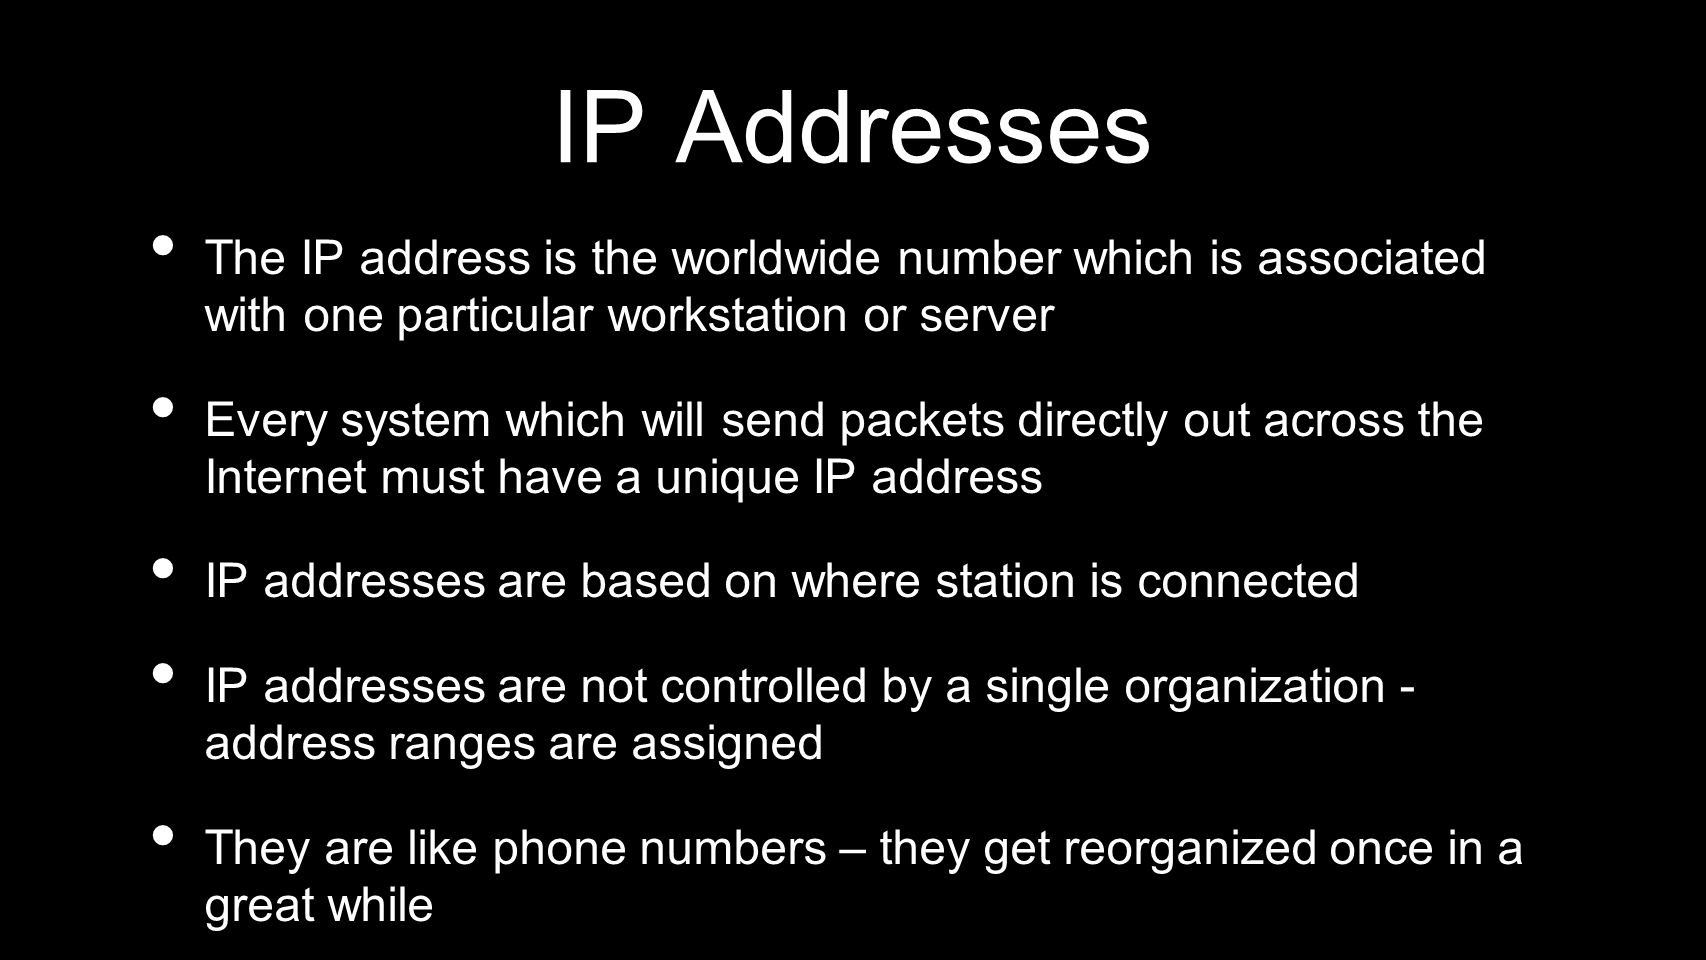 IP Addresses The IP address is the worldwide number which is associated with one particular workstation or server Every system which will send packets